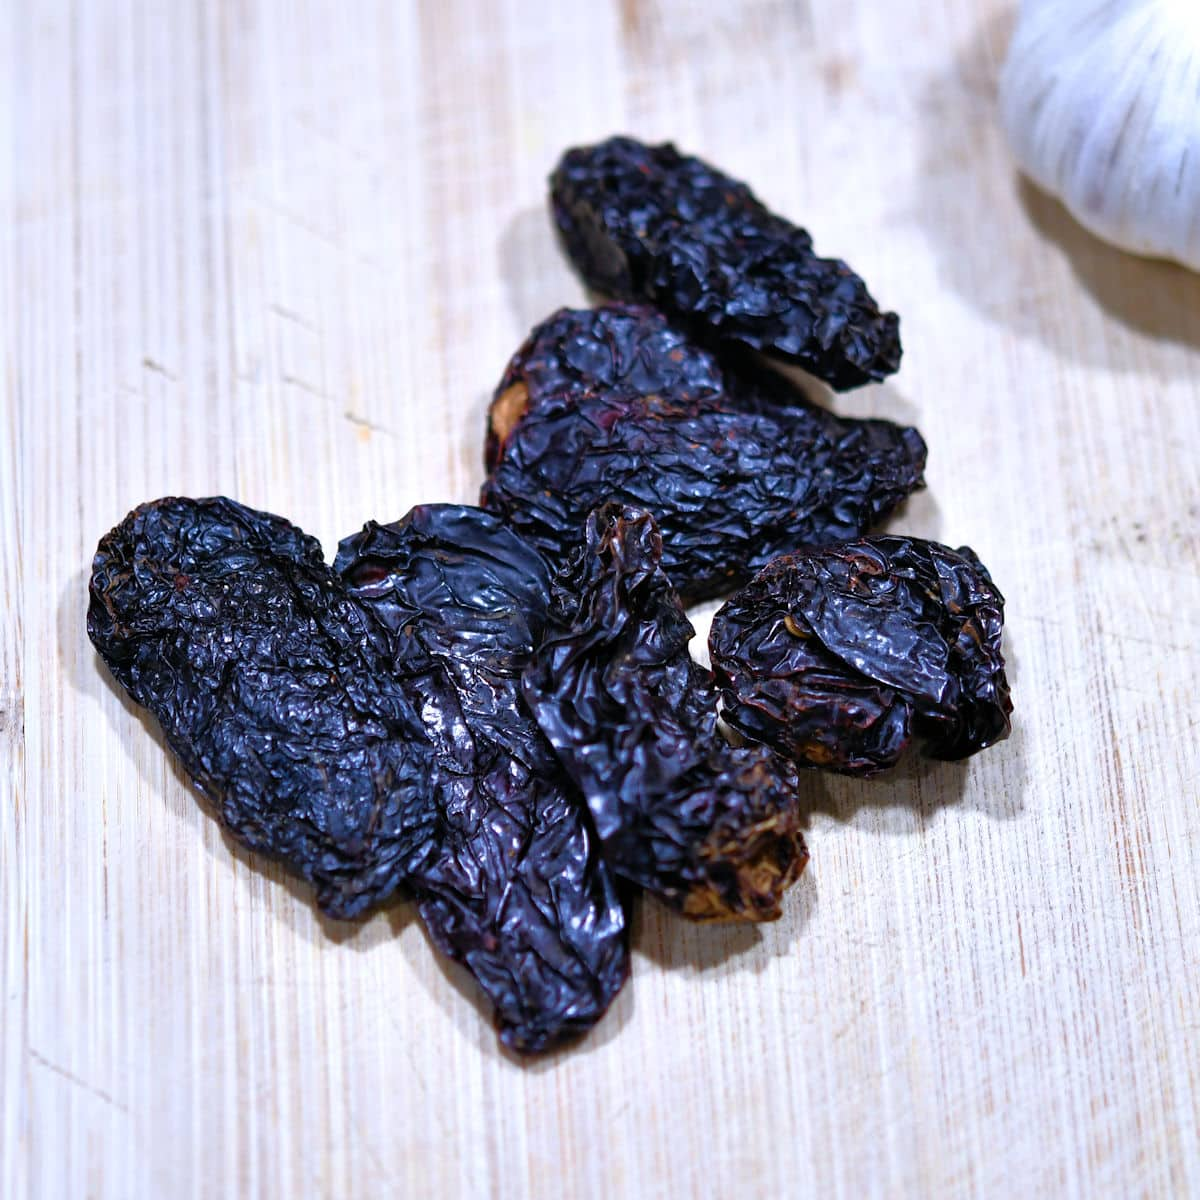 handful of dried chipotle peppers on a cutting board